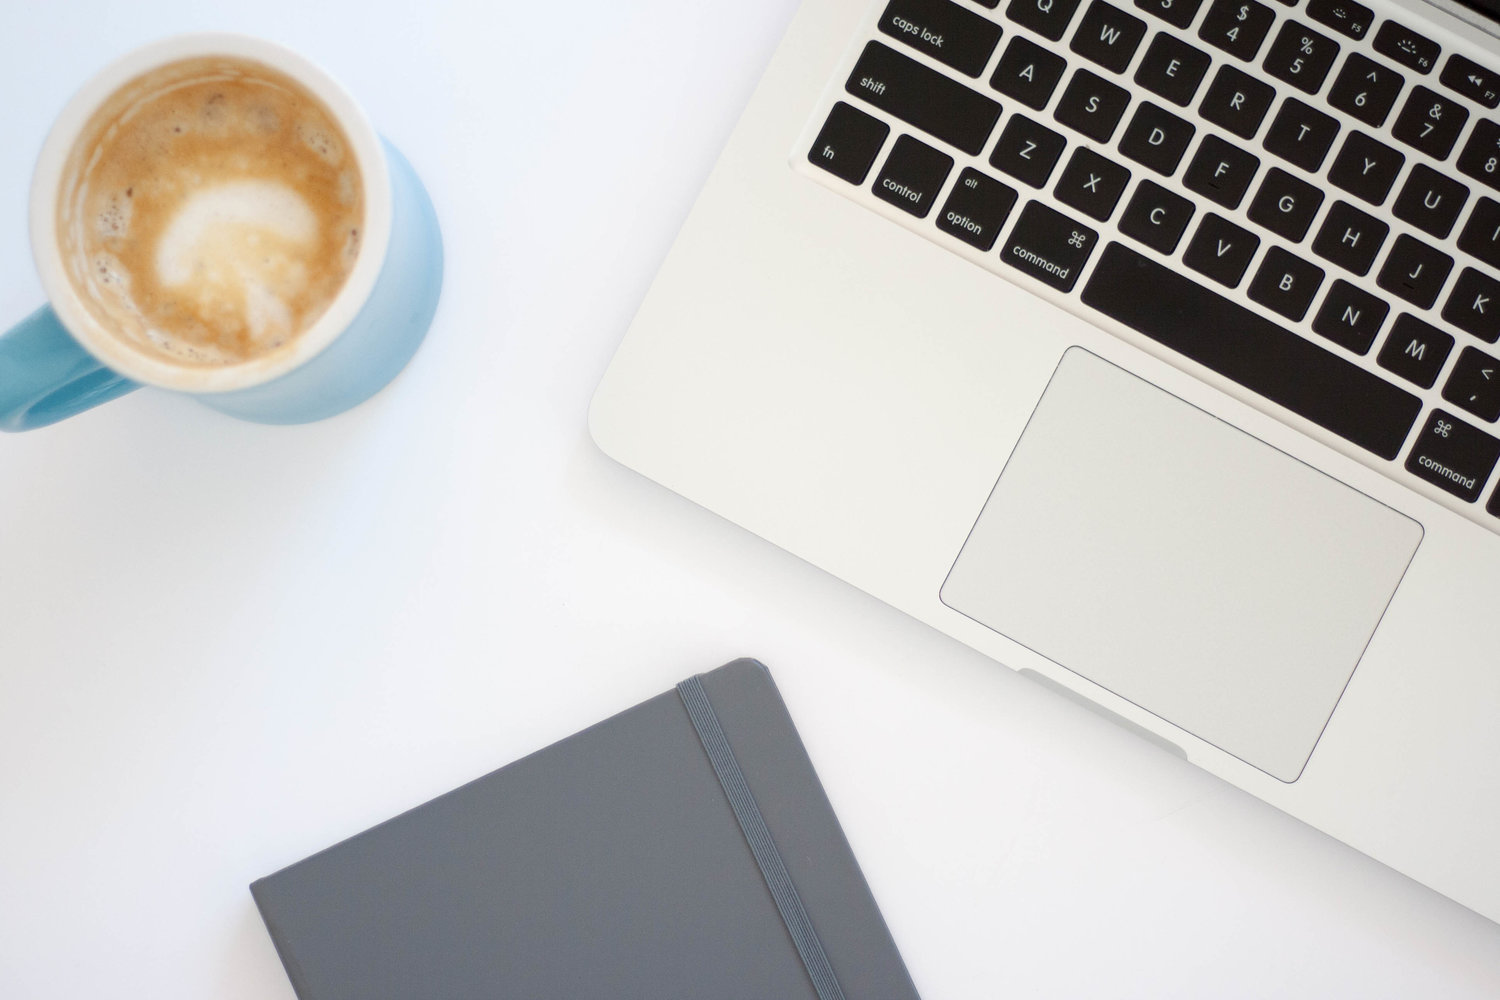 A mac laptop sits on a white table top next to a coffee cup and a notepad